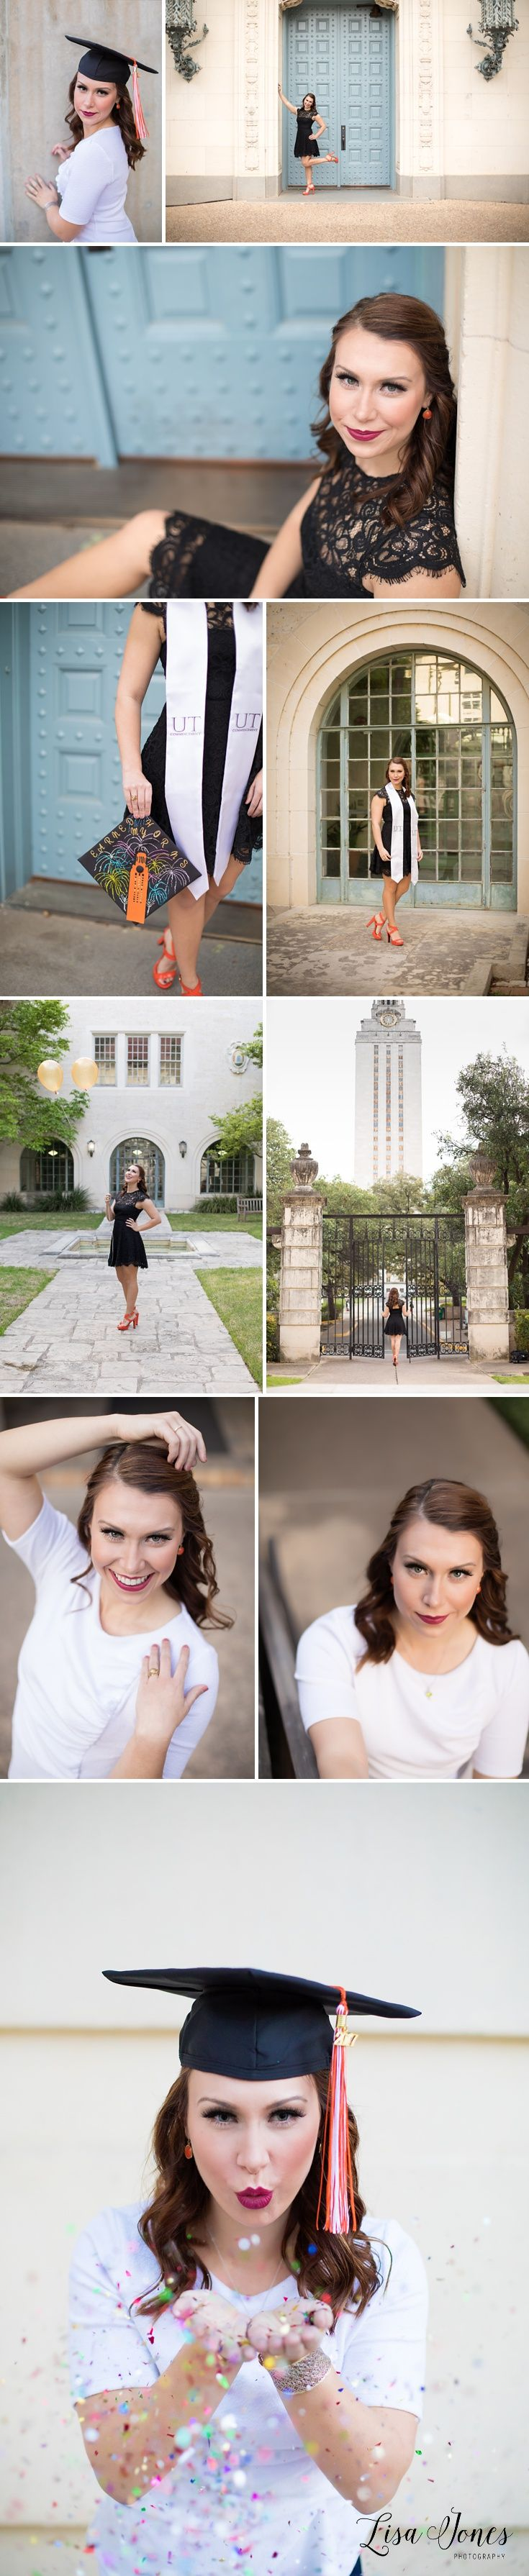 Senior pictures | senior picture poses | senior picture ideas